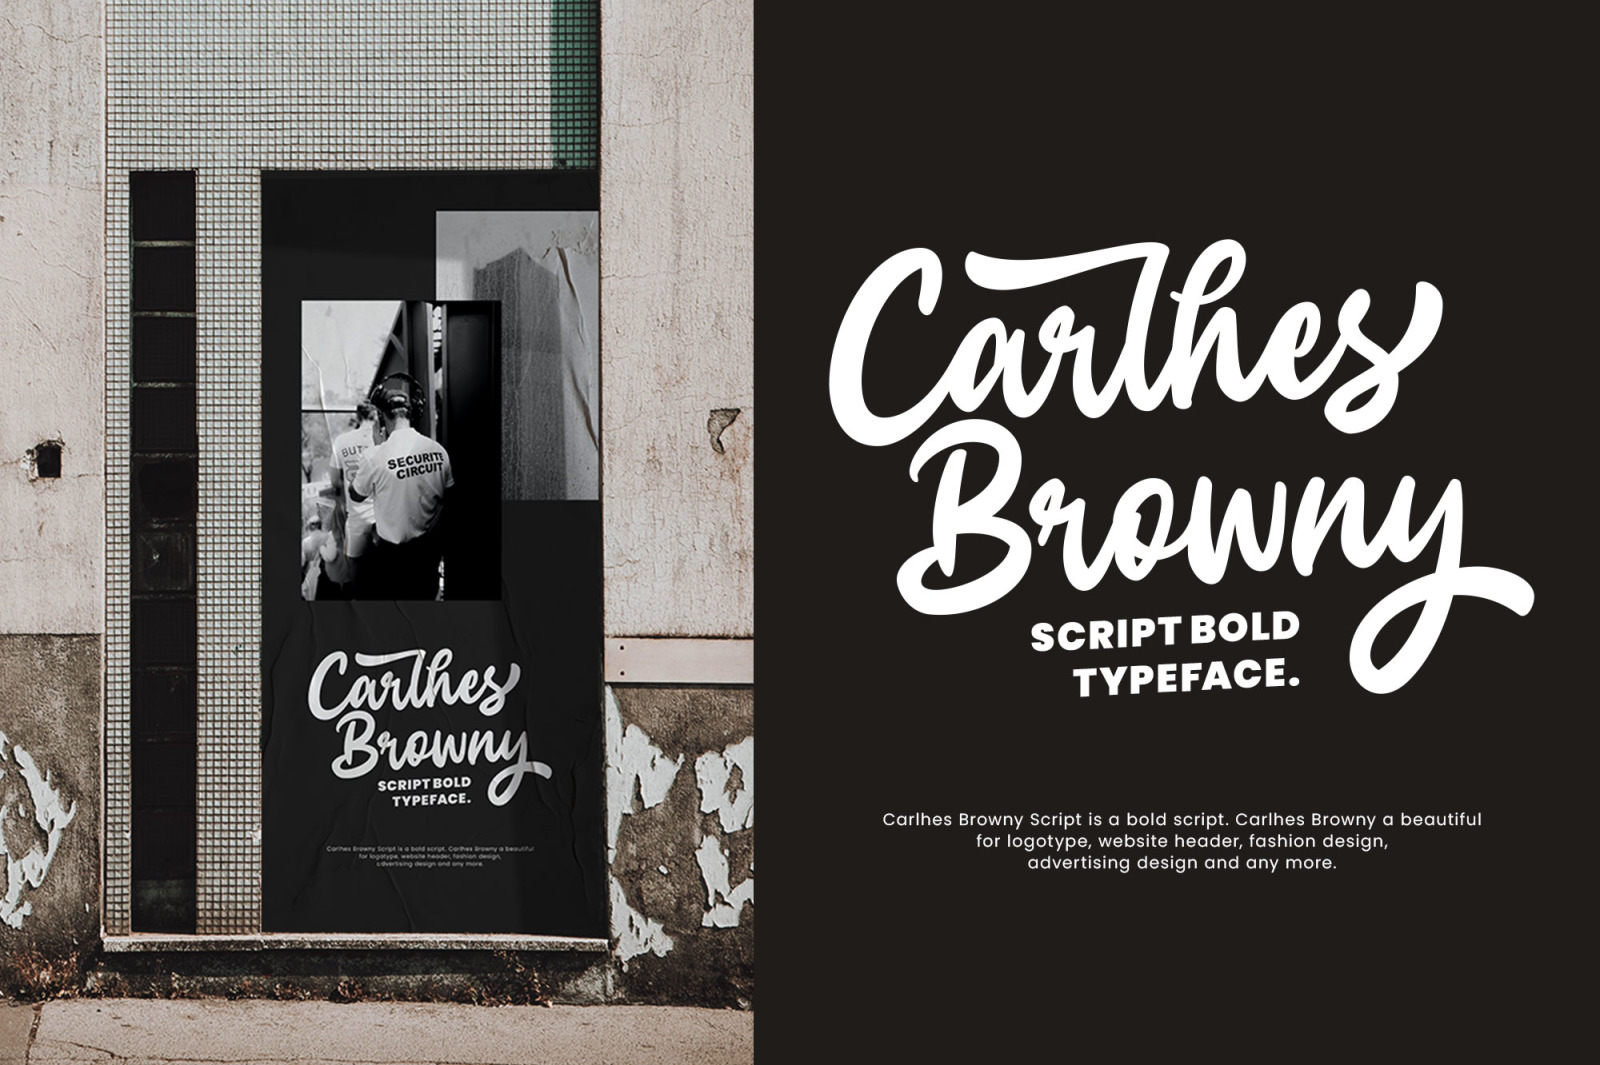 Carlhes Browny